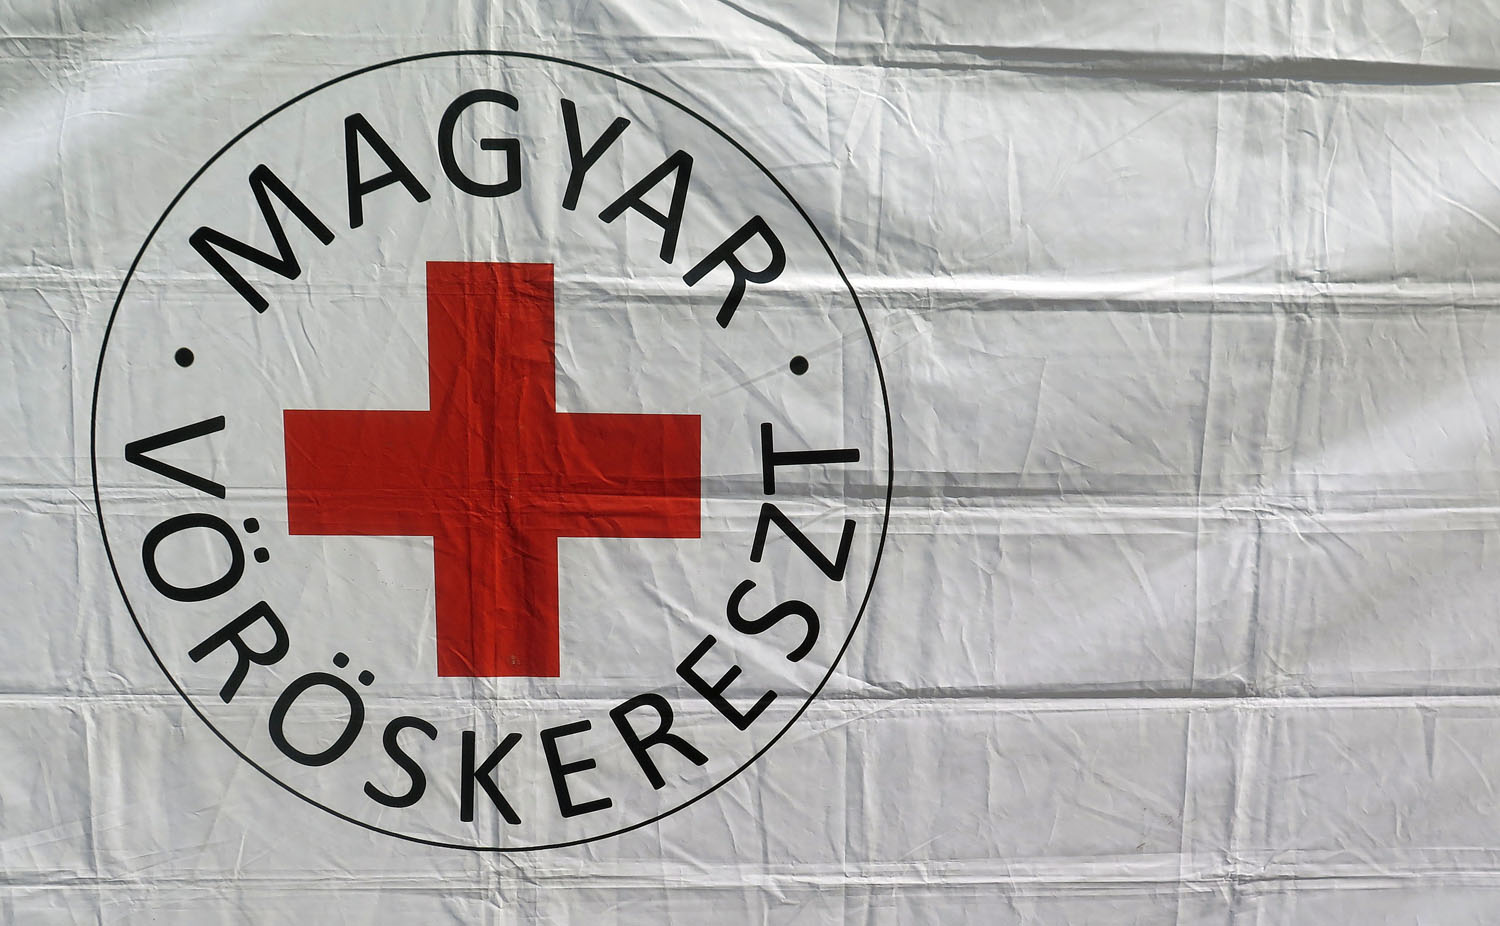 hungary-budapest-street-scenes-red-cross